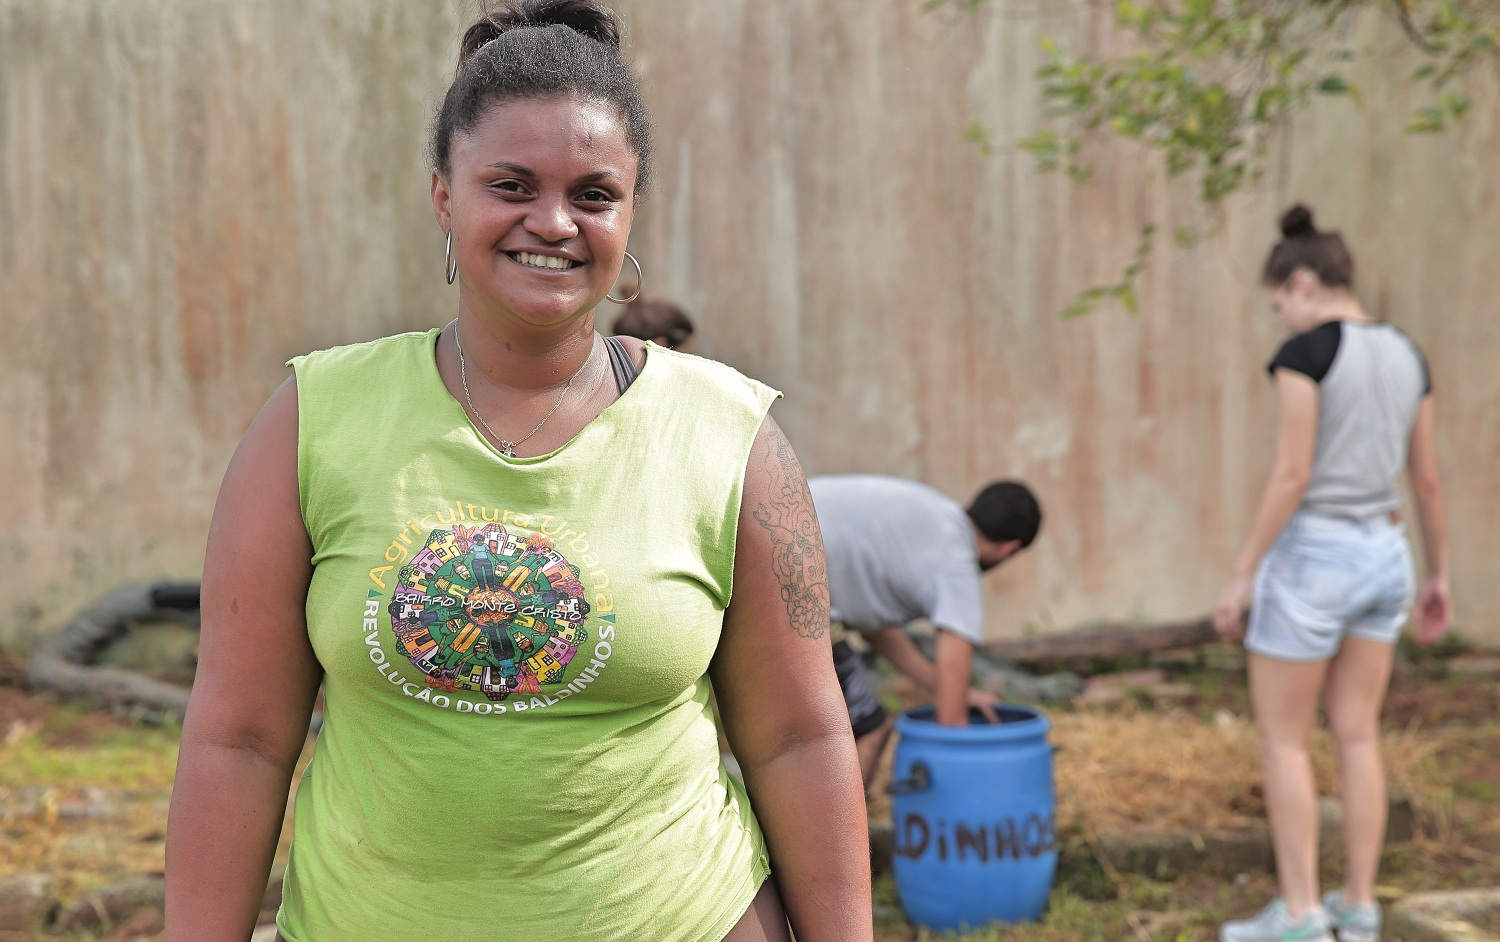 A black woman with her hair tied up. She is wearing a light-green tank top and smiling at the camera. In the background, two people are working in a garden.